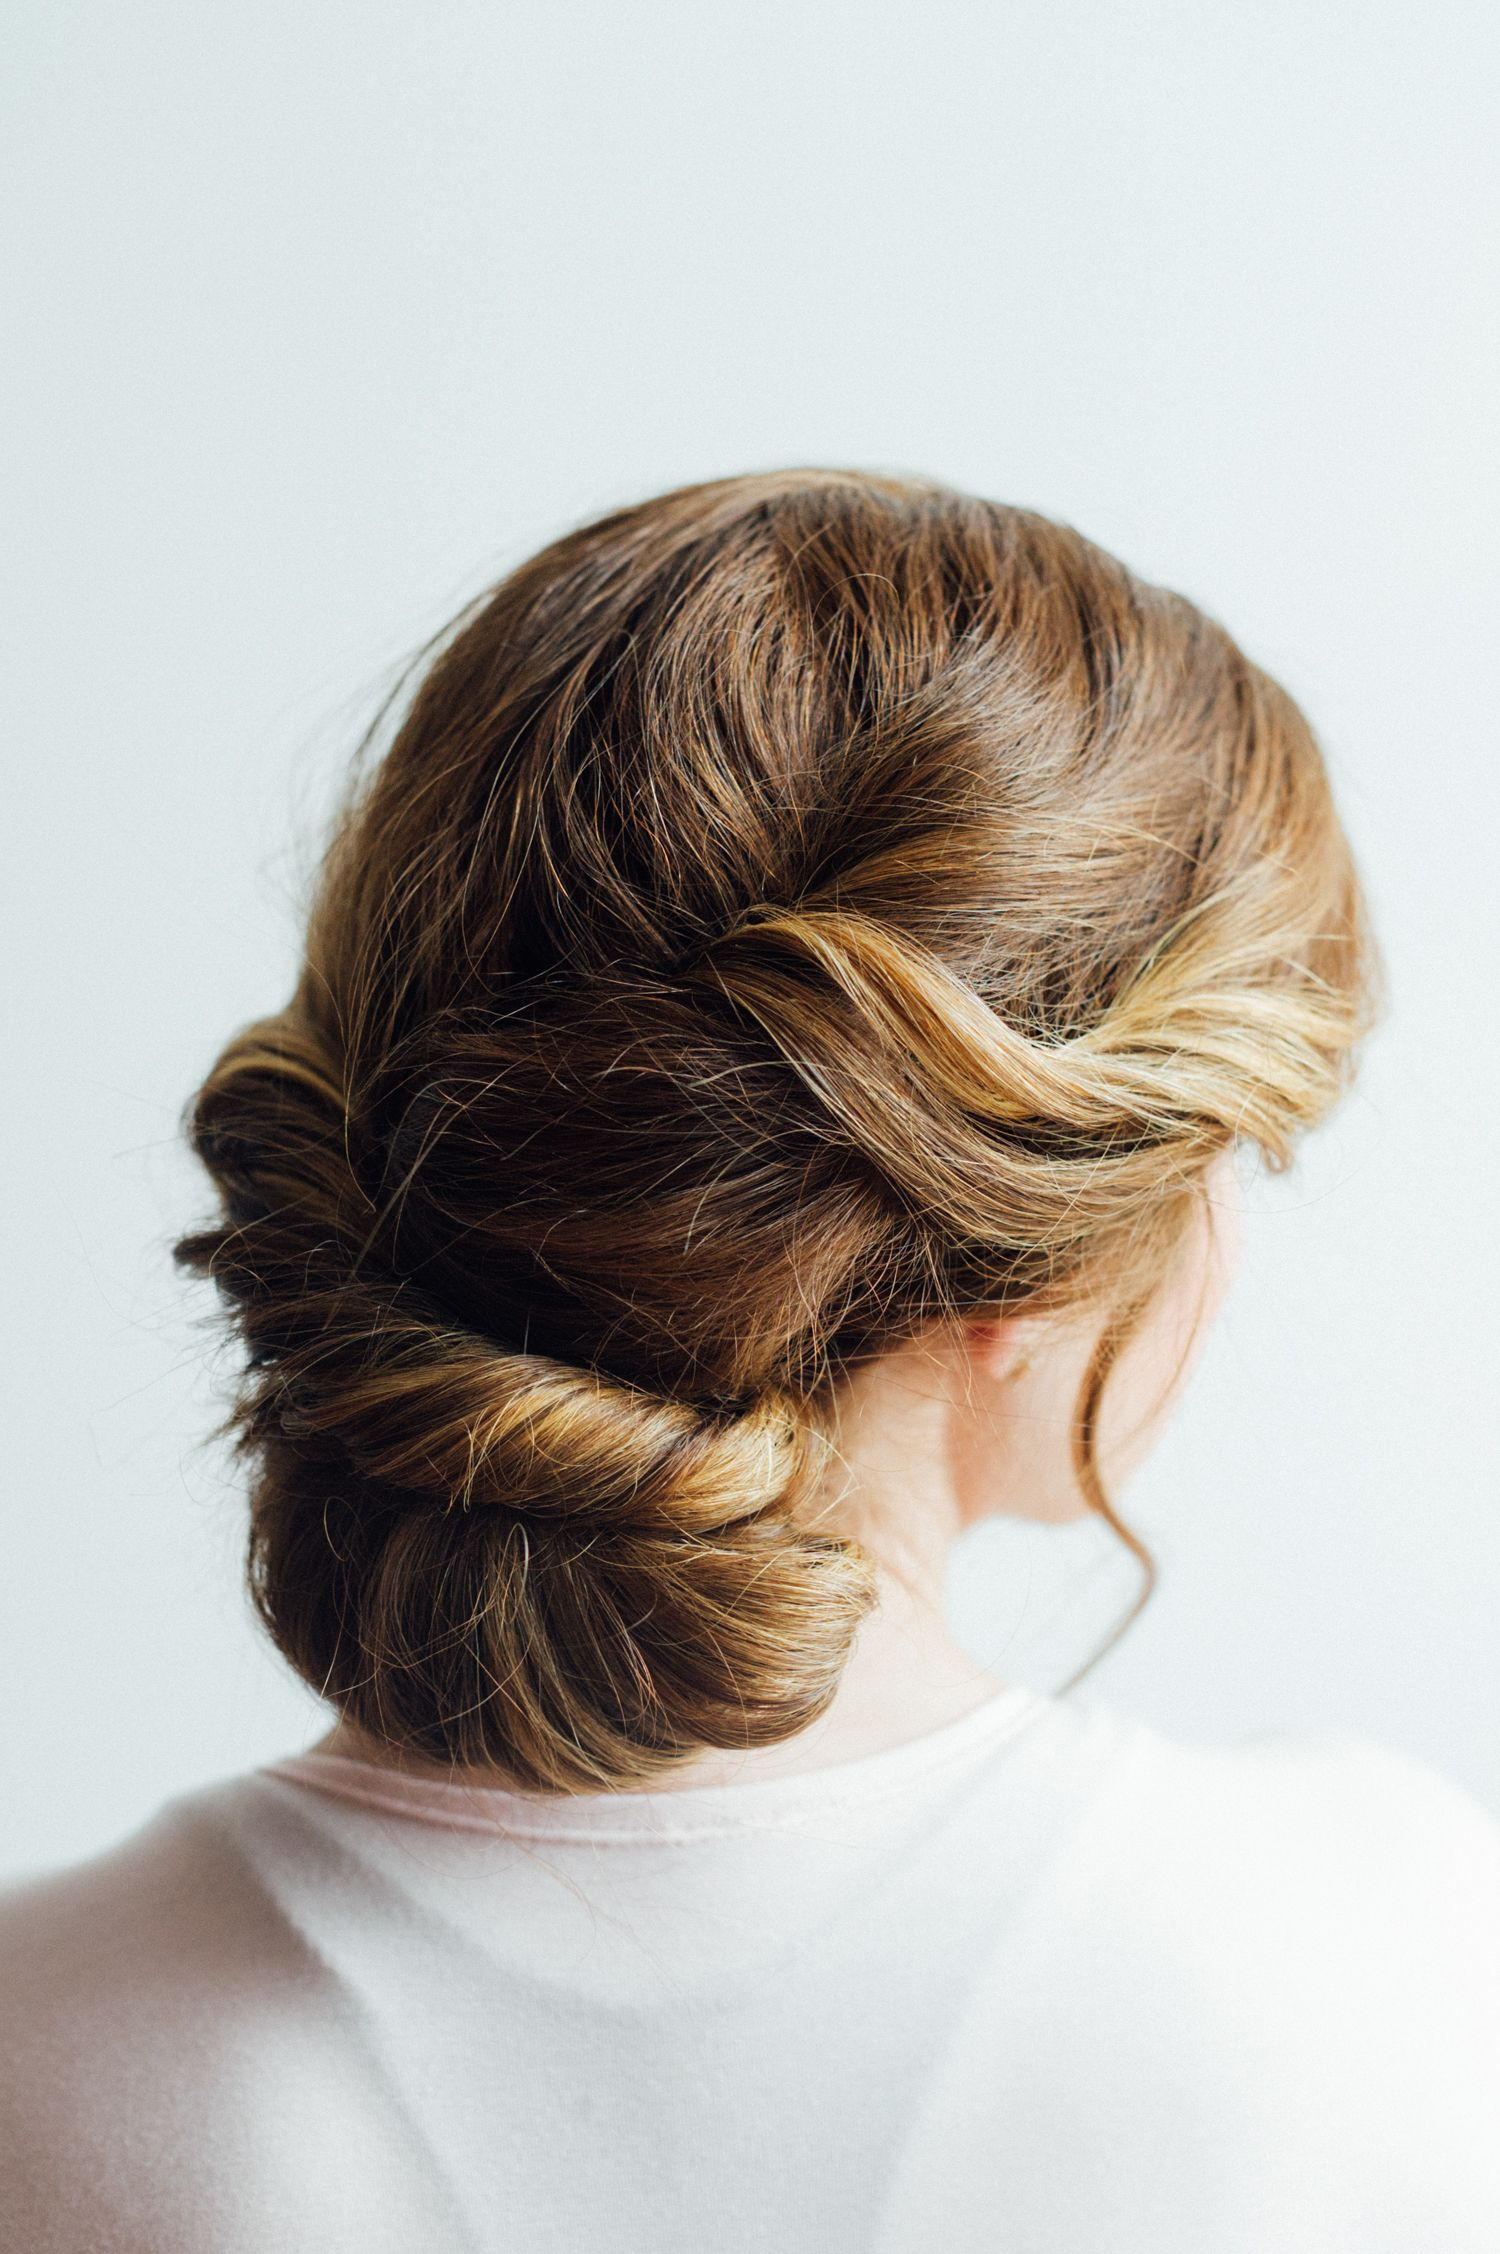 Easy diy updo for after wedding brunch or rehearsal dinner updo easy diy updo for after wedding brunch or rehearsal dinner layered hairstylesformal solutioingenieria Image collections